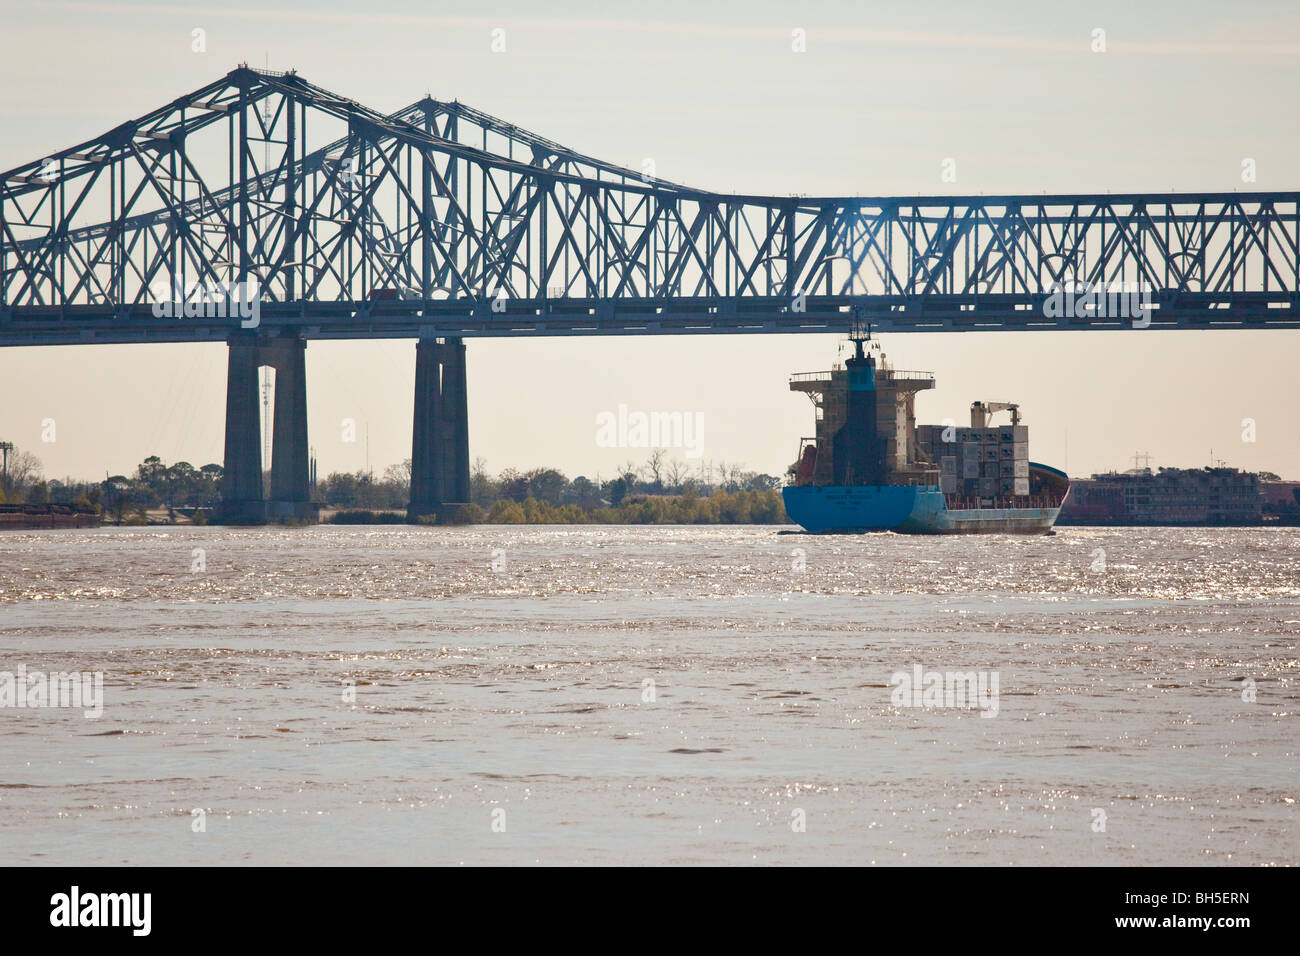 Shipping, Crescent City Connection formerly Greater New Orleans Bridge, Mississippi River, New Orleans, LA Stock Photo